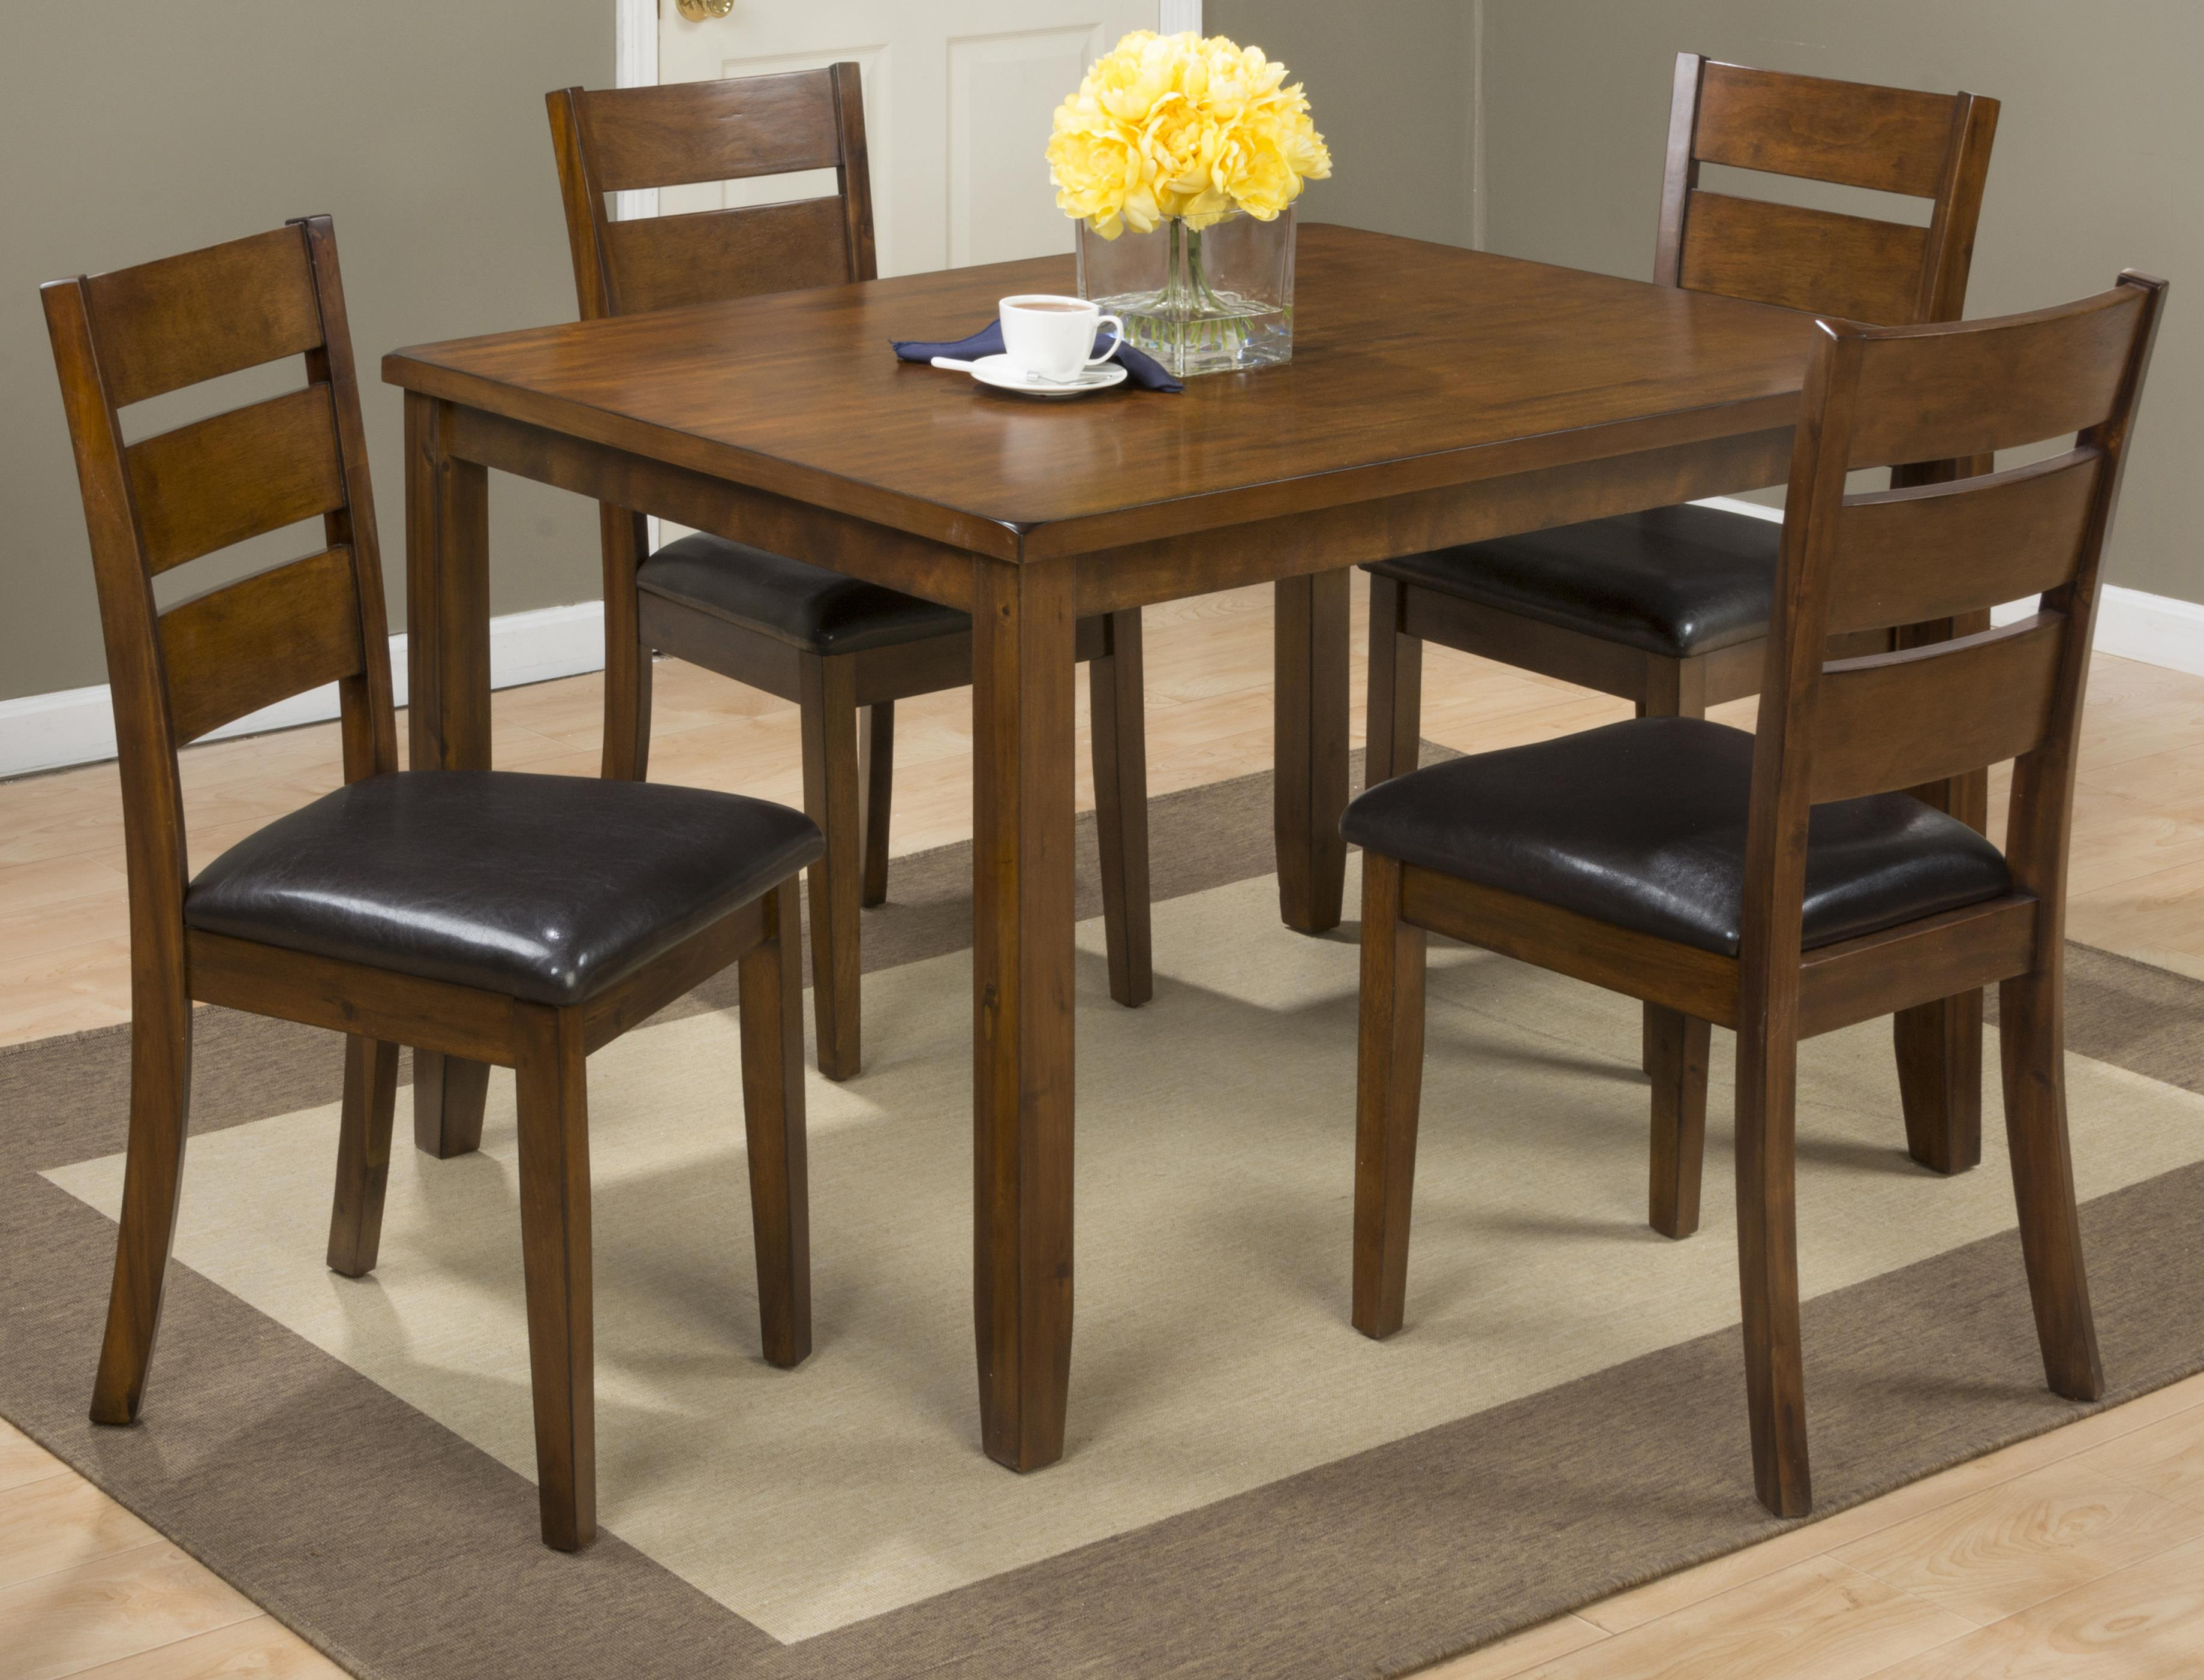 Plantation 5 Pack- Table with 4 Chairs by Jofran at Jofran